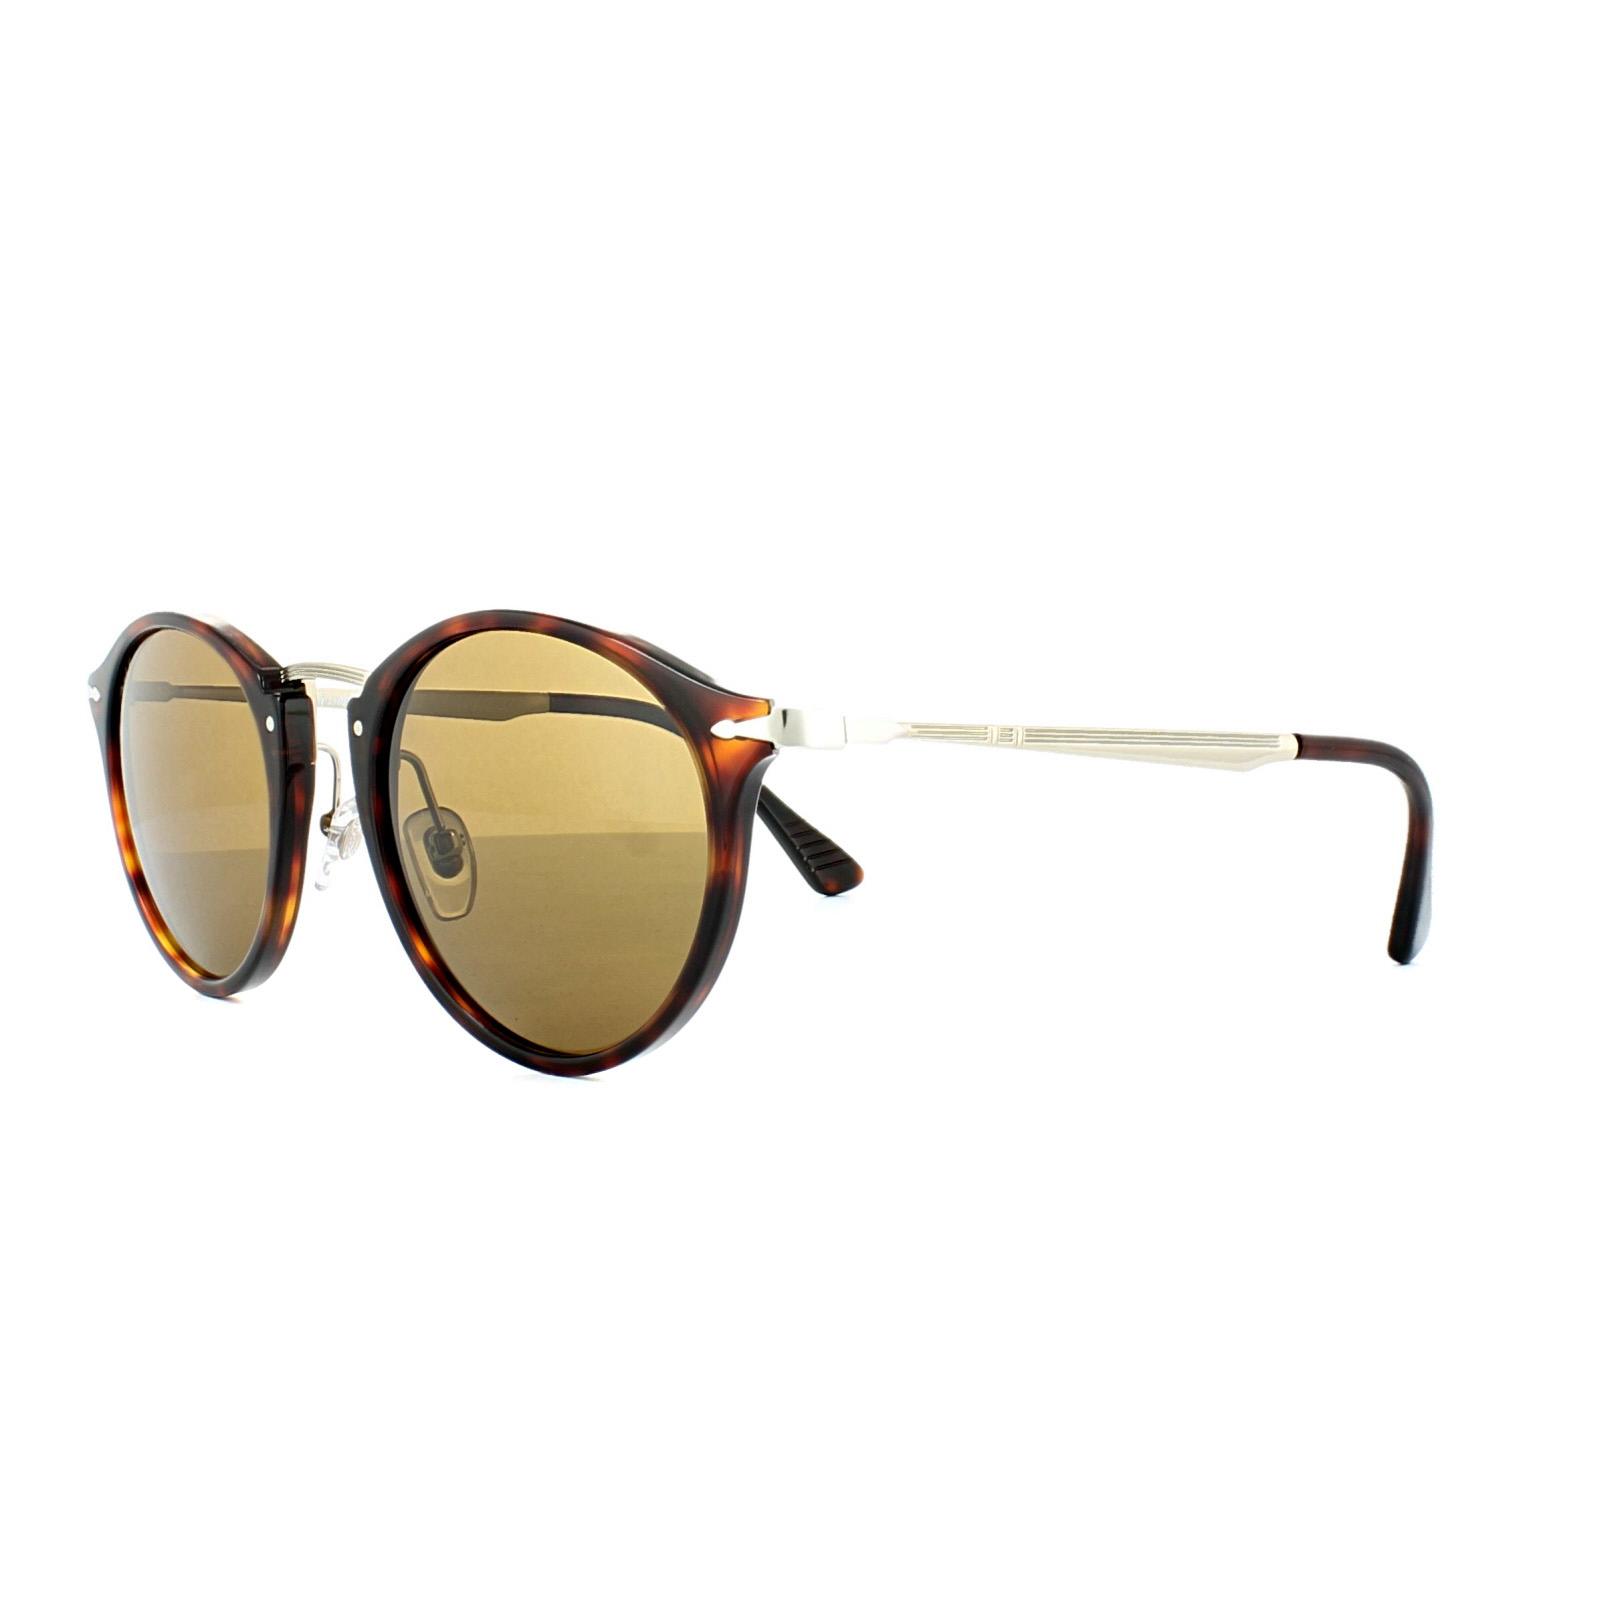 24d1cadb6bc Persol Sunglasses 3166 24 57 Havana Brown Polarized 8053672666311